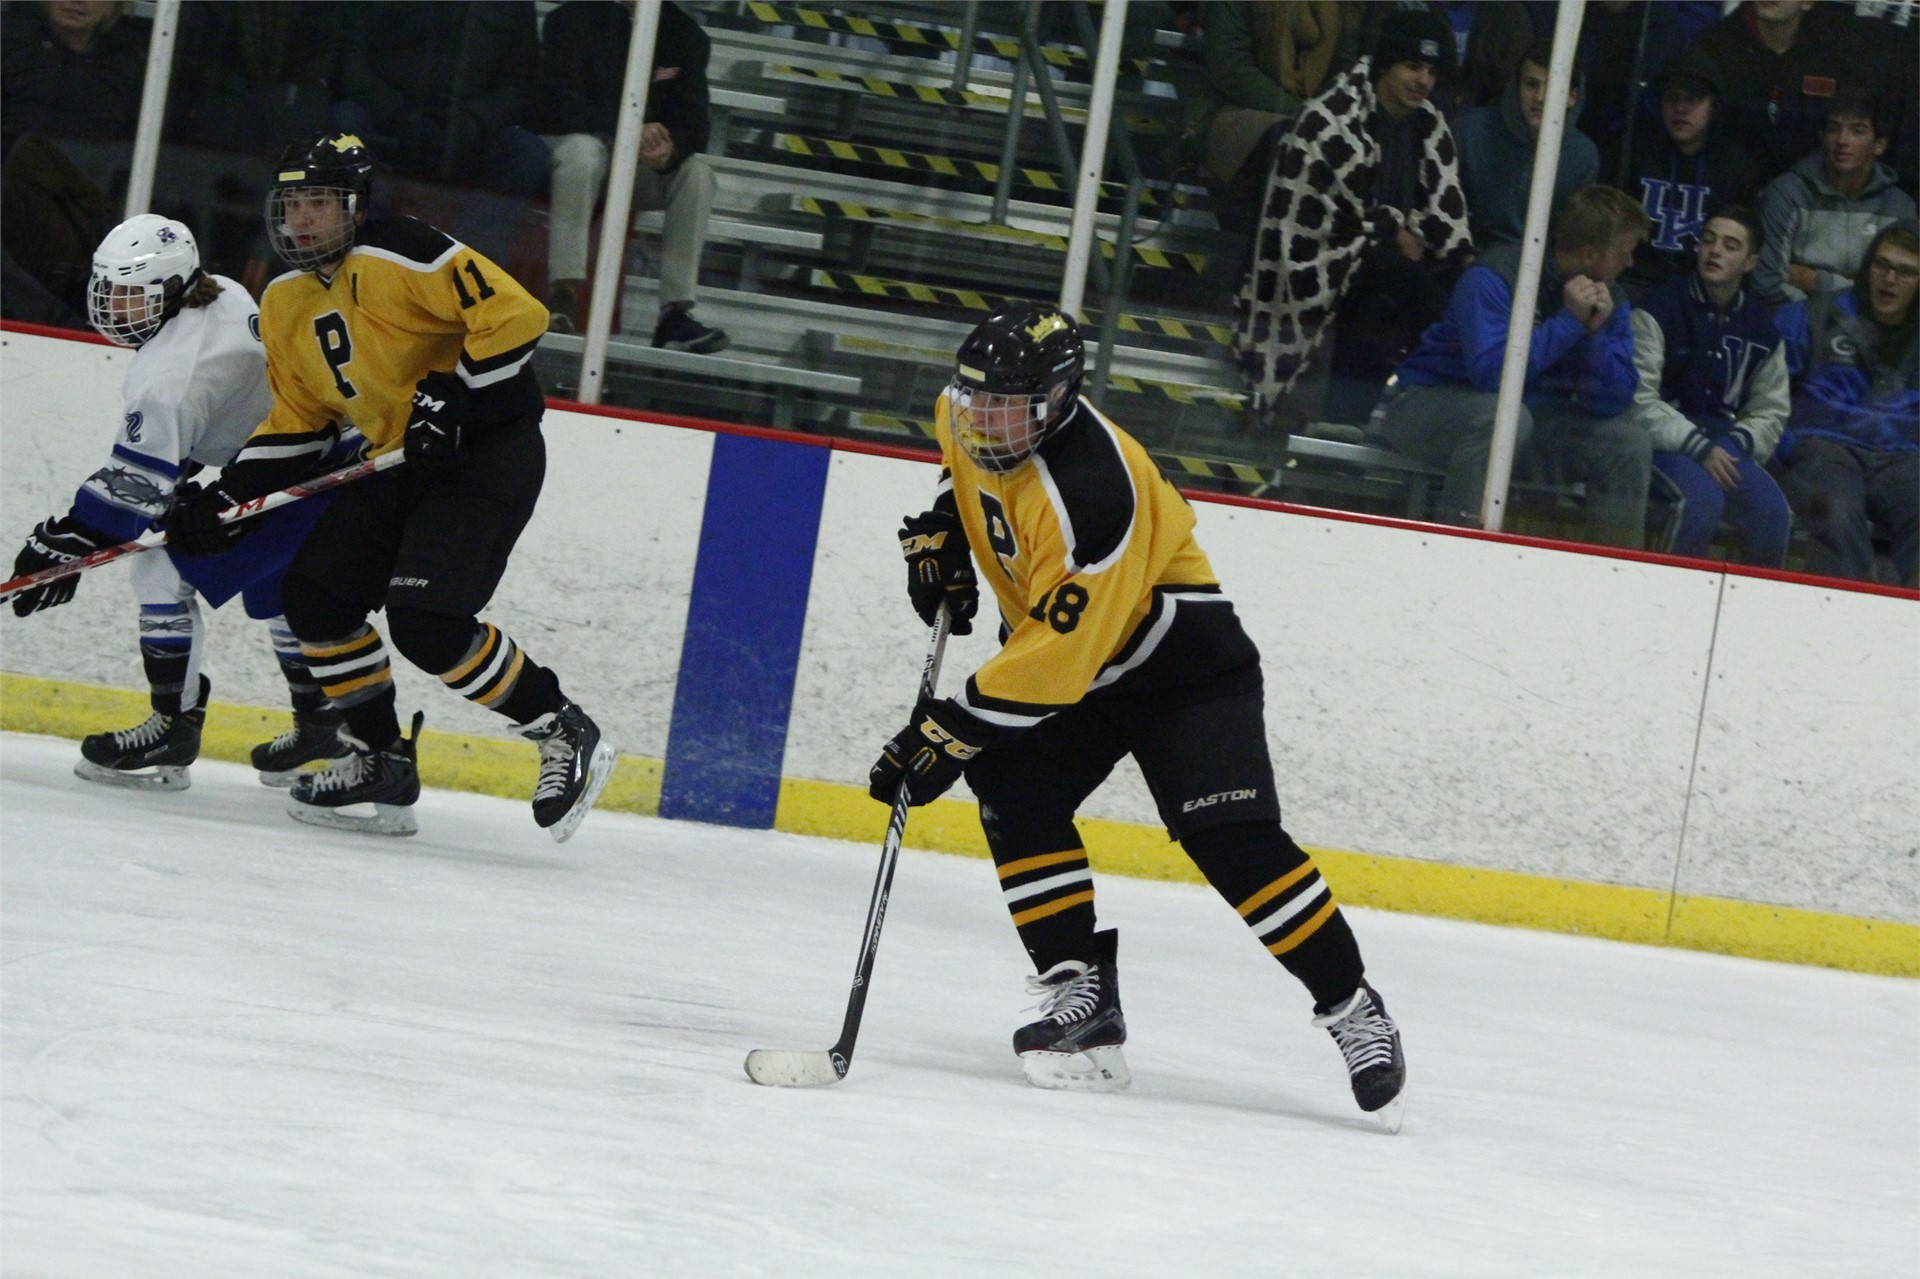 PHS student athlete handling a puck